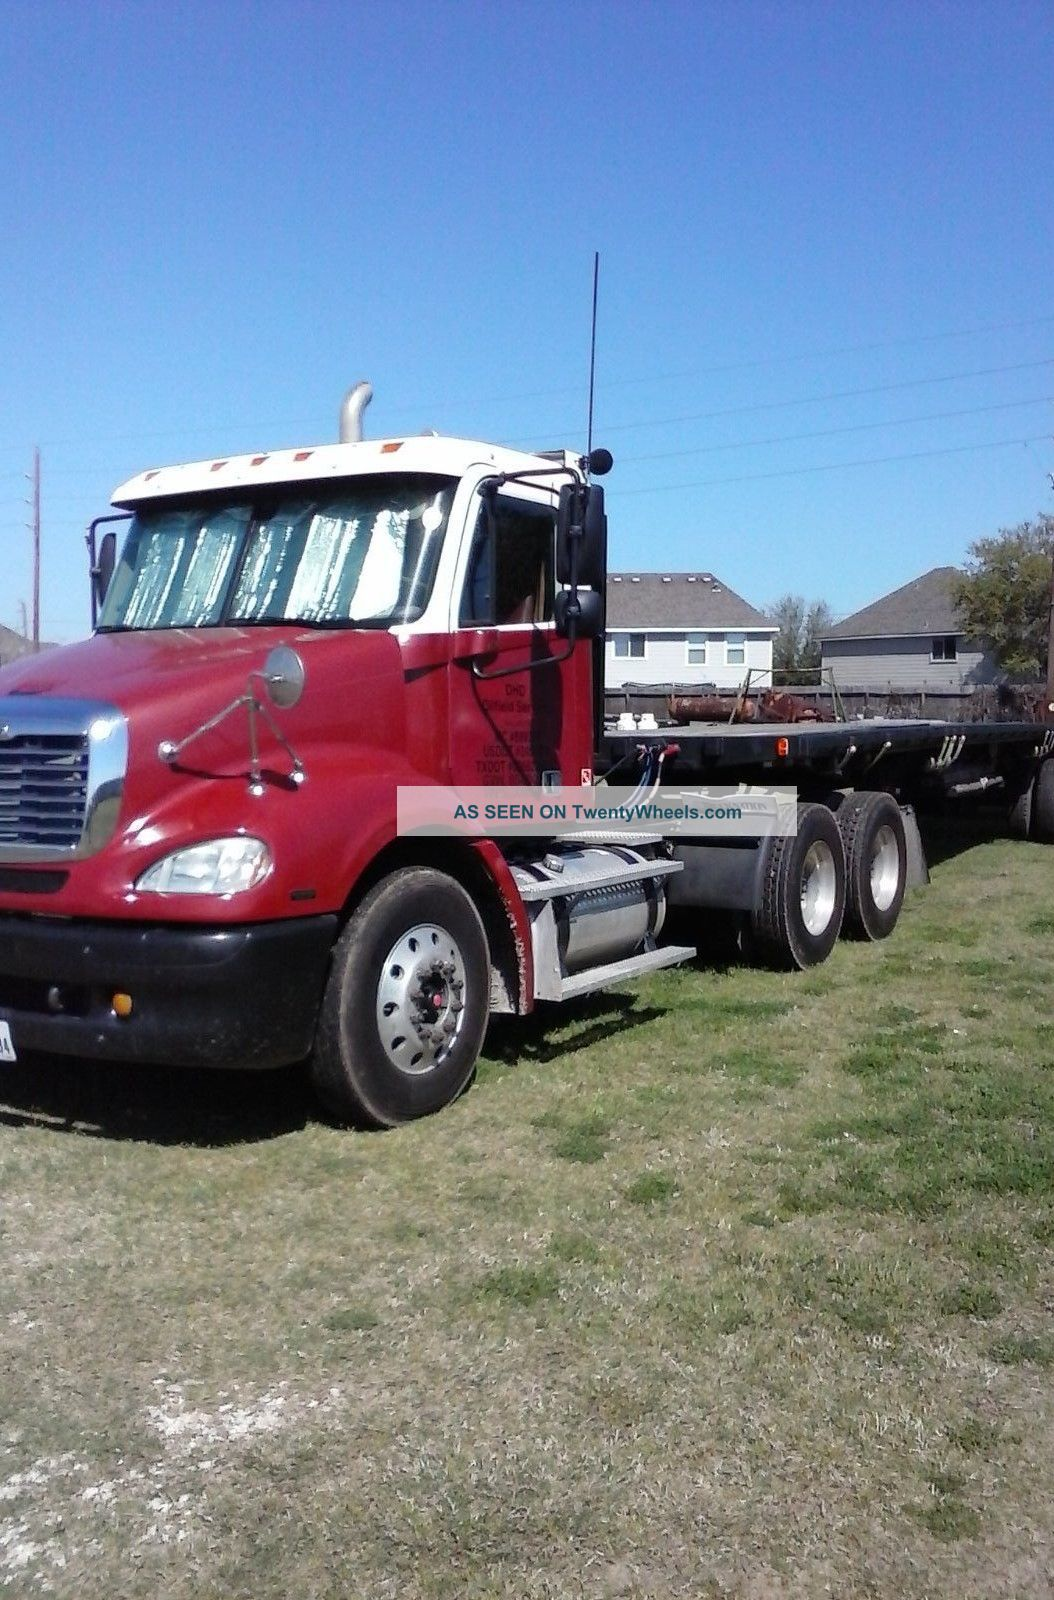 International Pro Star Premium Sky Rise Sleeper Lgw additionally Volvo Vnl T Lgw moreover International Prostar Lgw also Freightliner Columbia Cl St Lgw together with Freightliner Columbia Lgw. on 2009 freightliner columbia owners manual